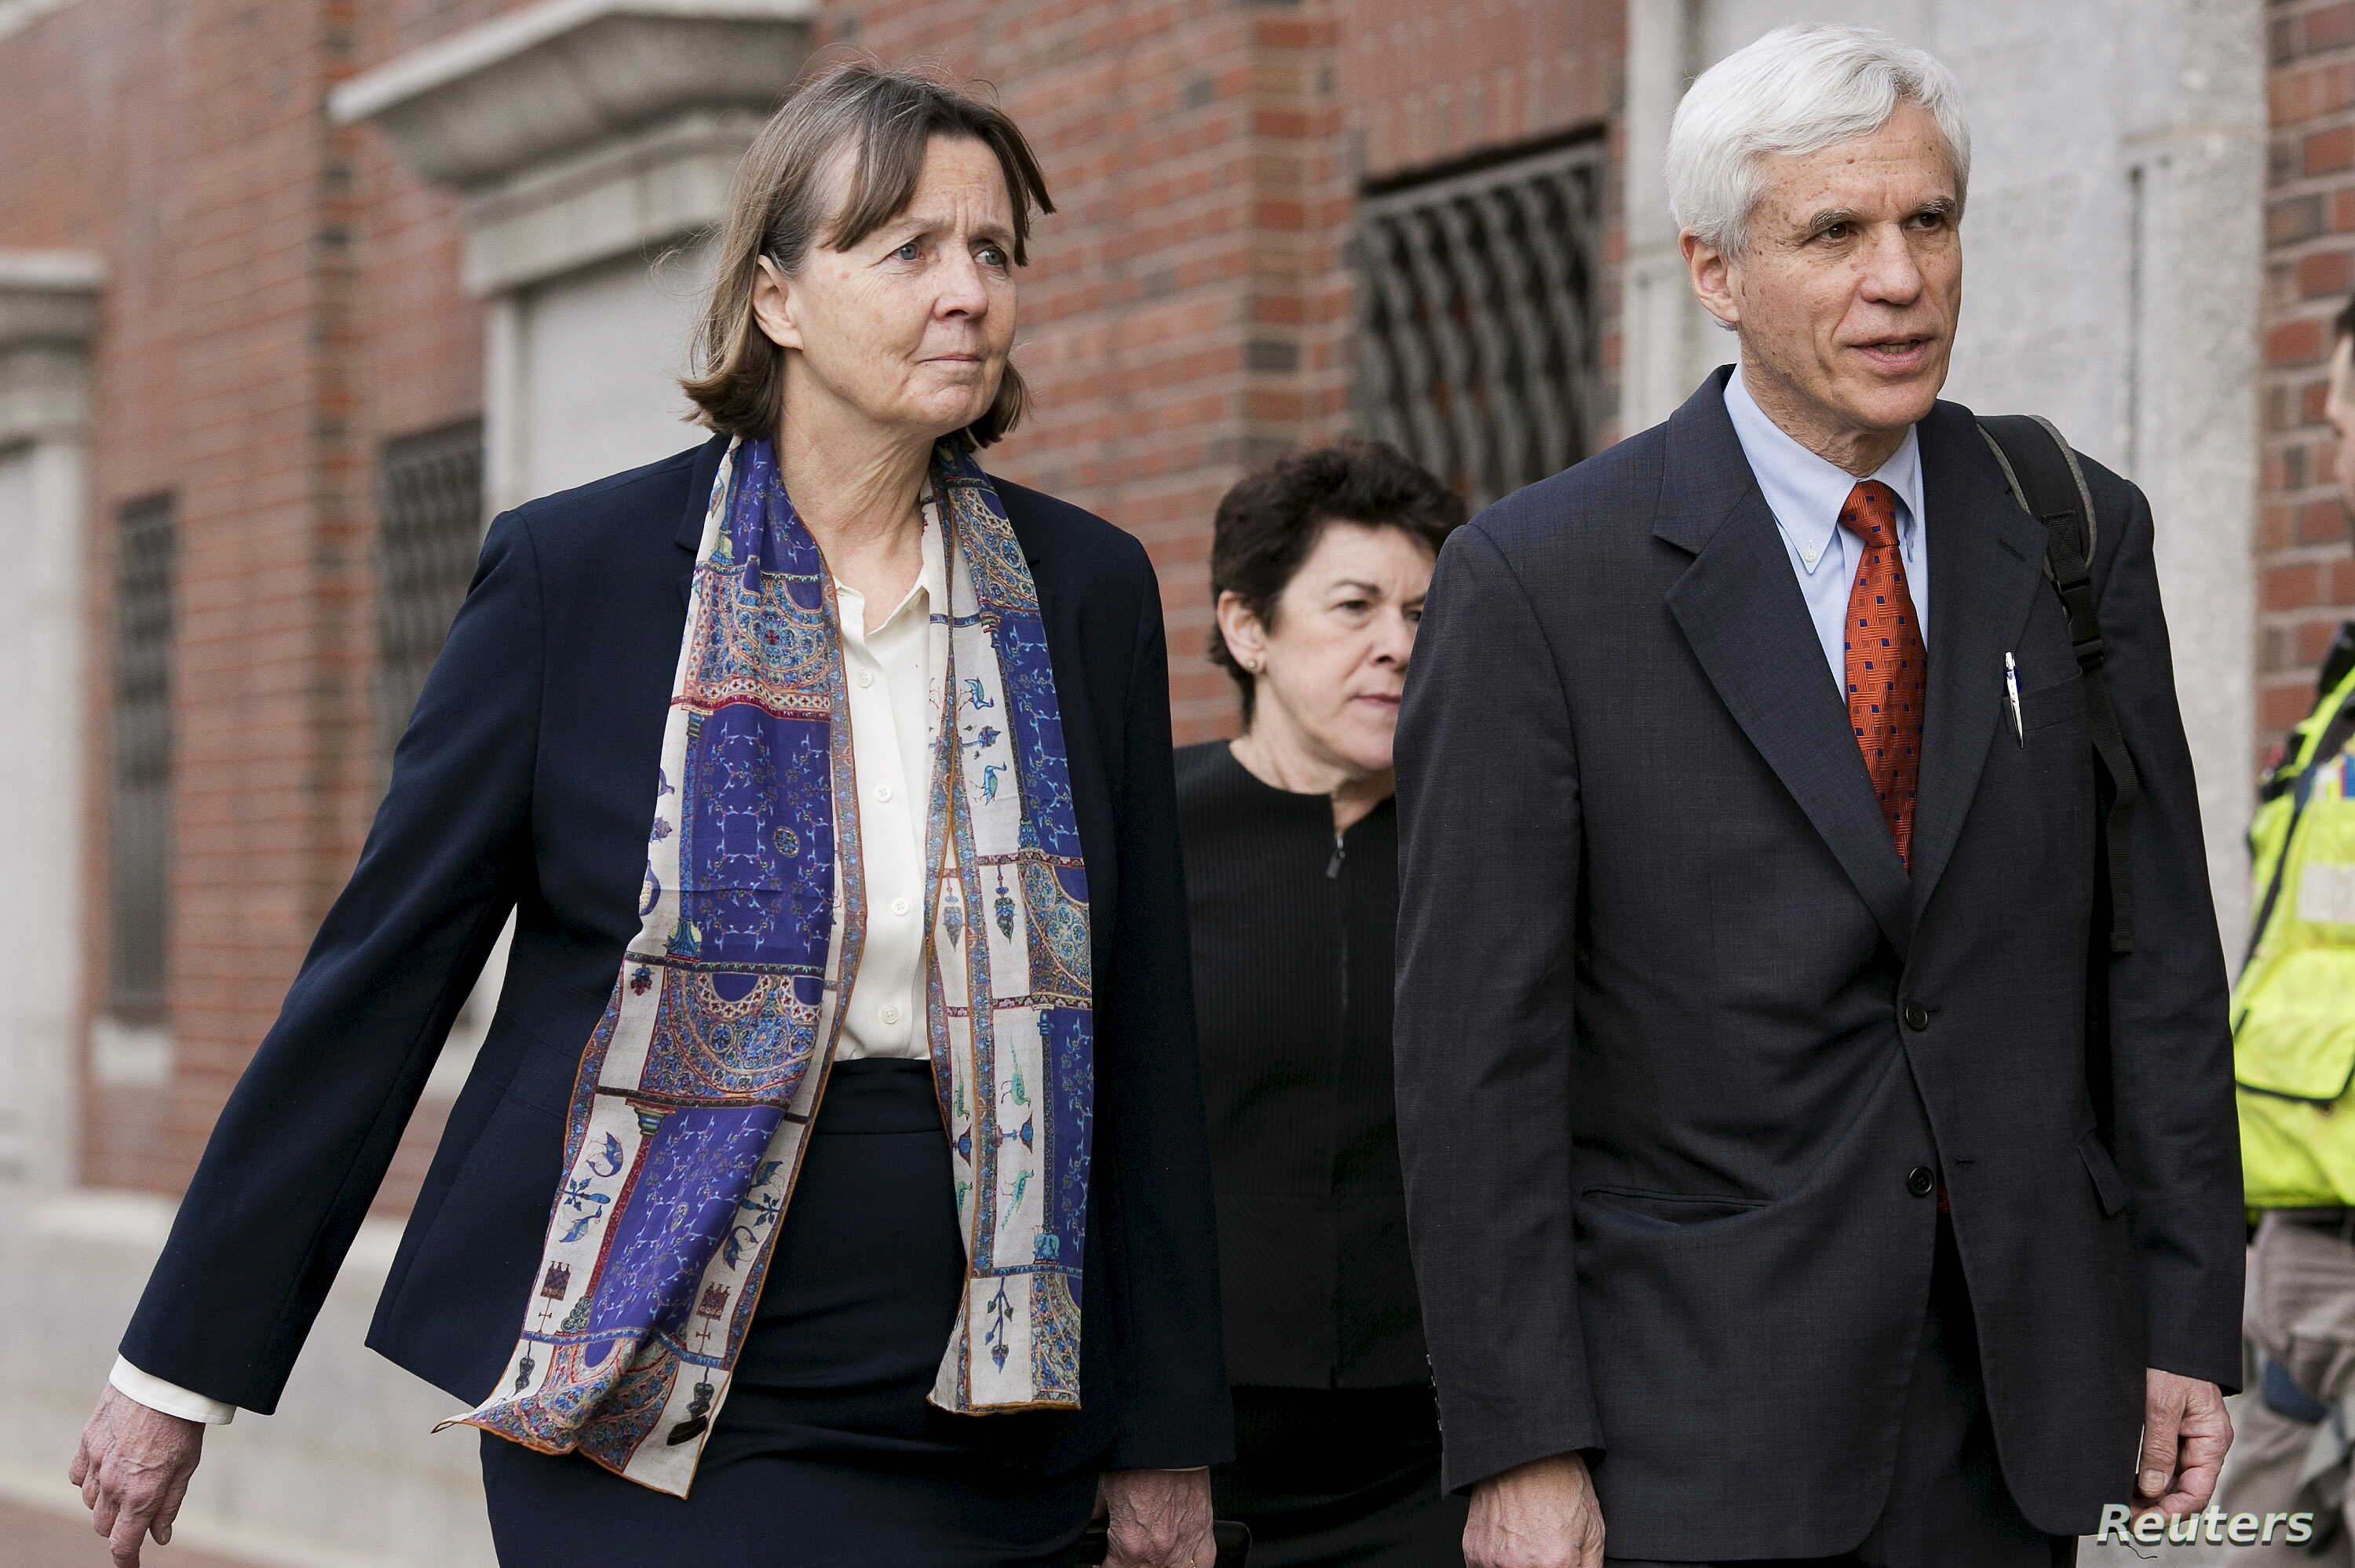 Judy Clarke, left, and David Bruck, defense attorneys for convicted Boston Marathon bomber Dzhokhar Tsarnaev, will try to prevent his getting a death sentence. They're shown at the federal courthouse in Boston, Massachusetts, April 6, 2015.